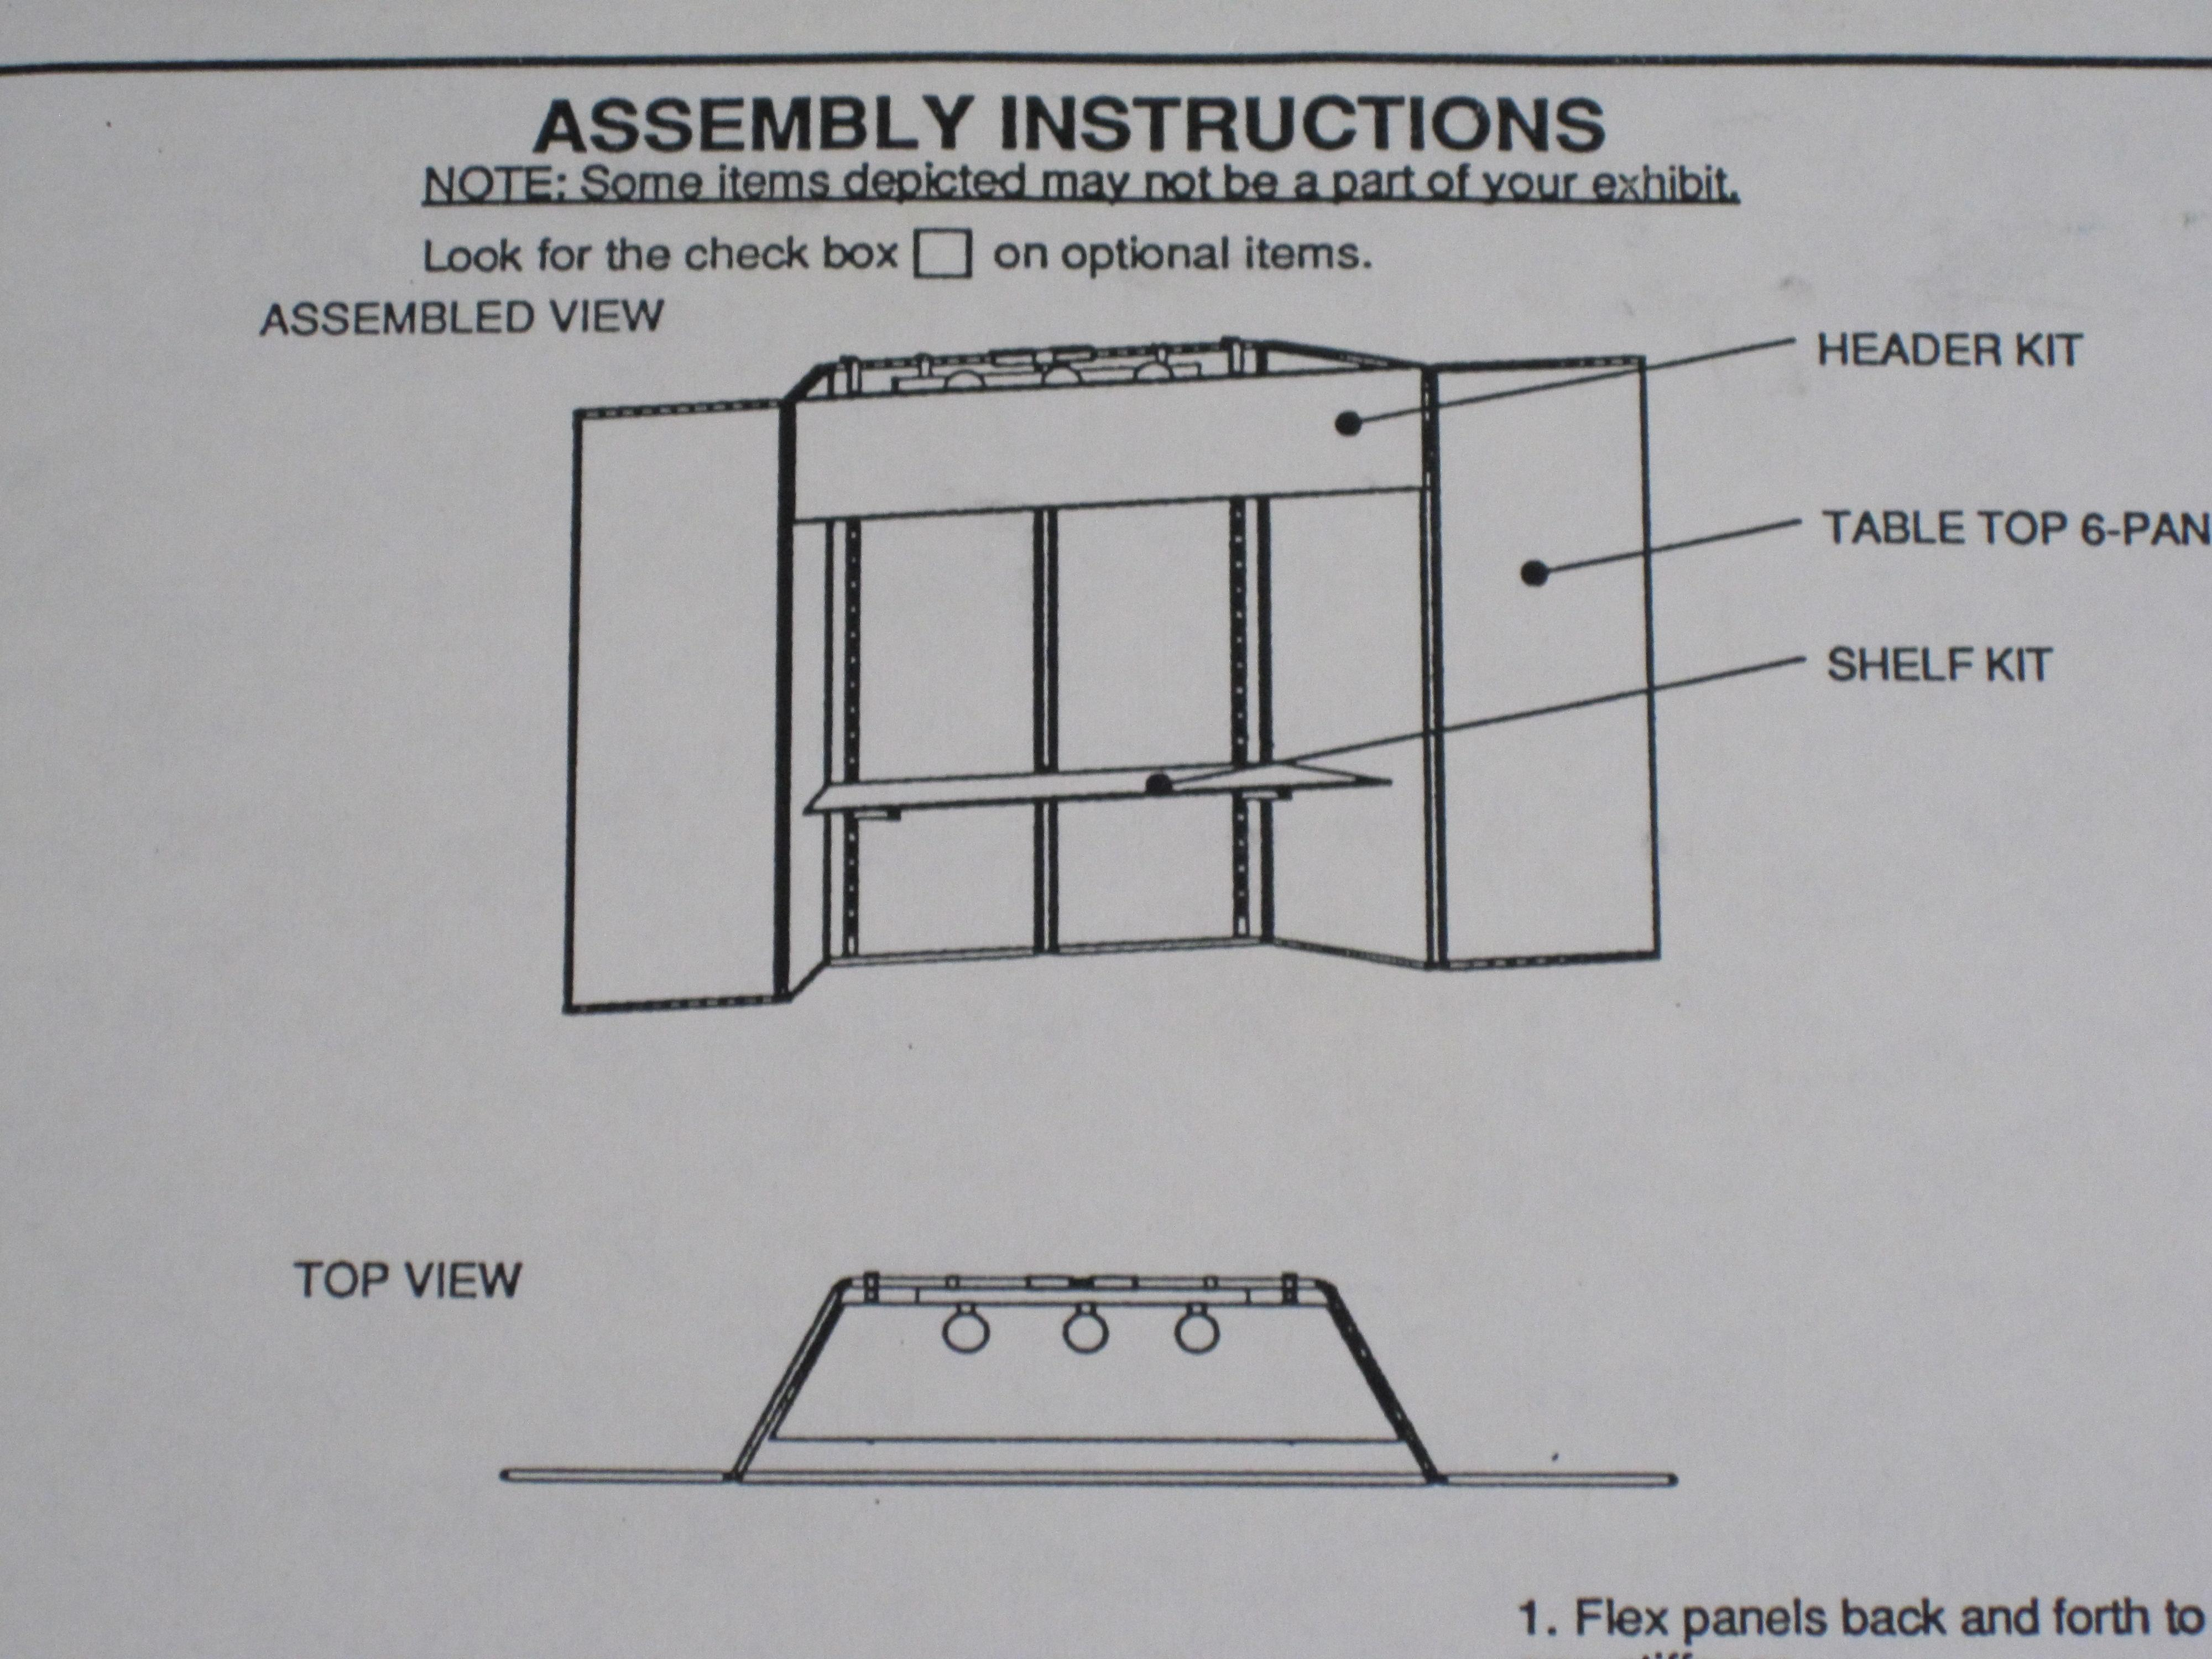 Maroon Display Board Assembly Instructions